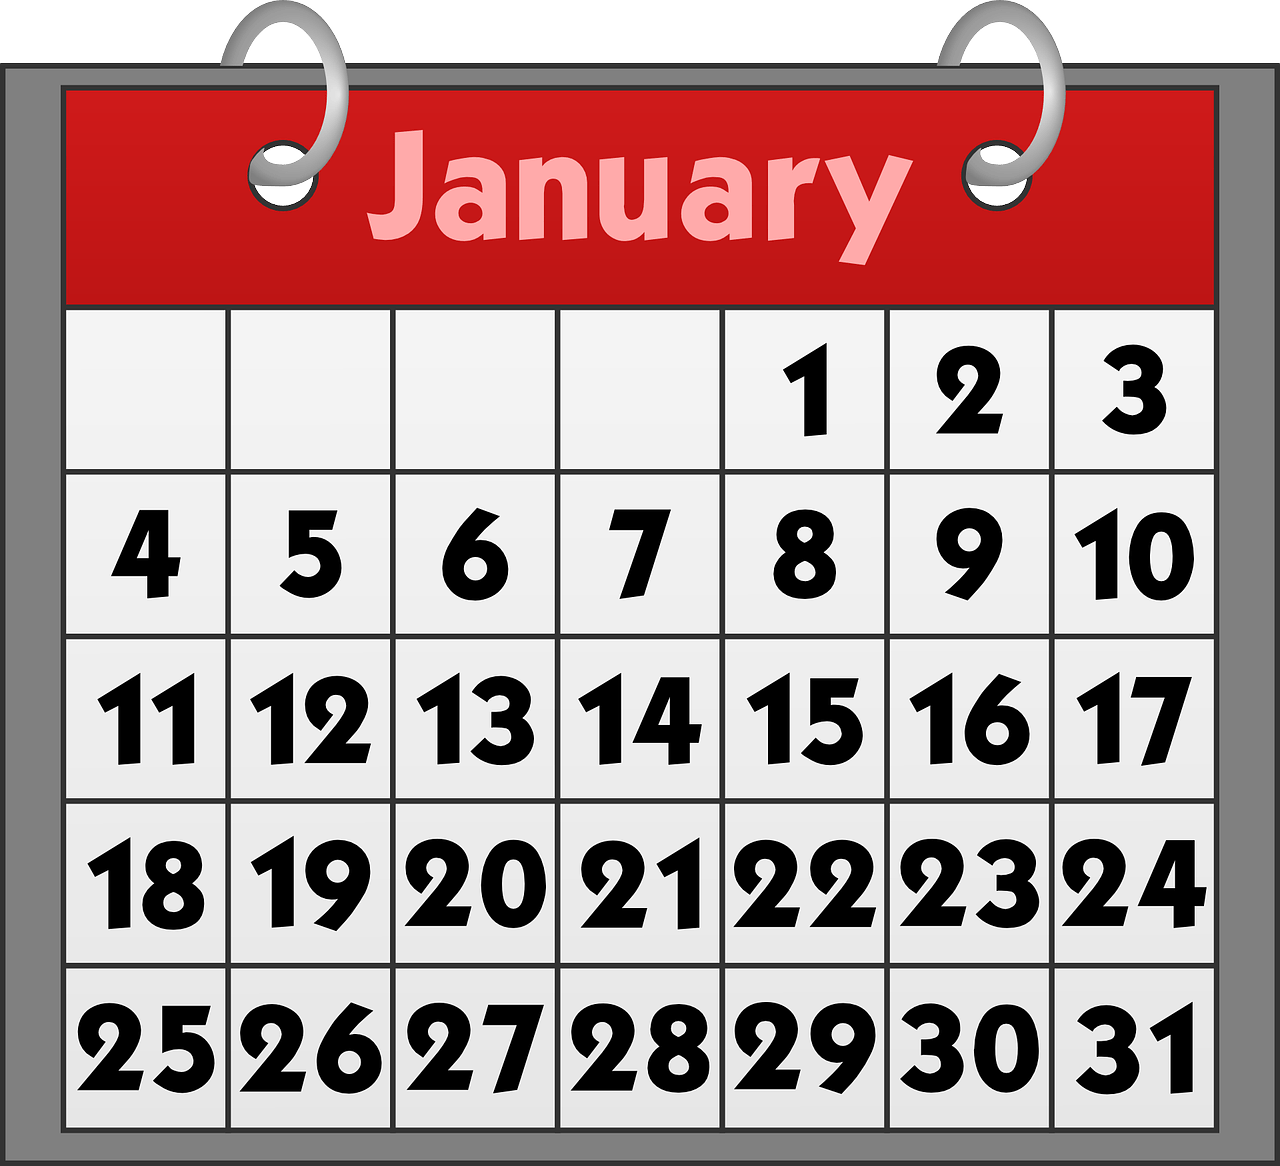 calendar-151591_1280 Struggling with Dry January in 2019?